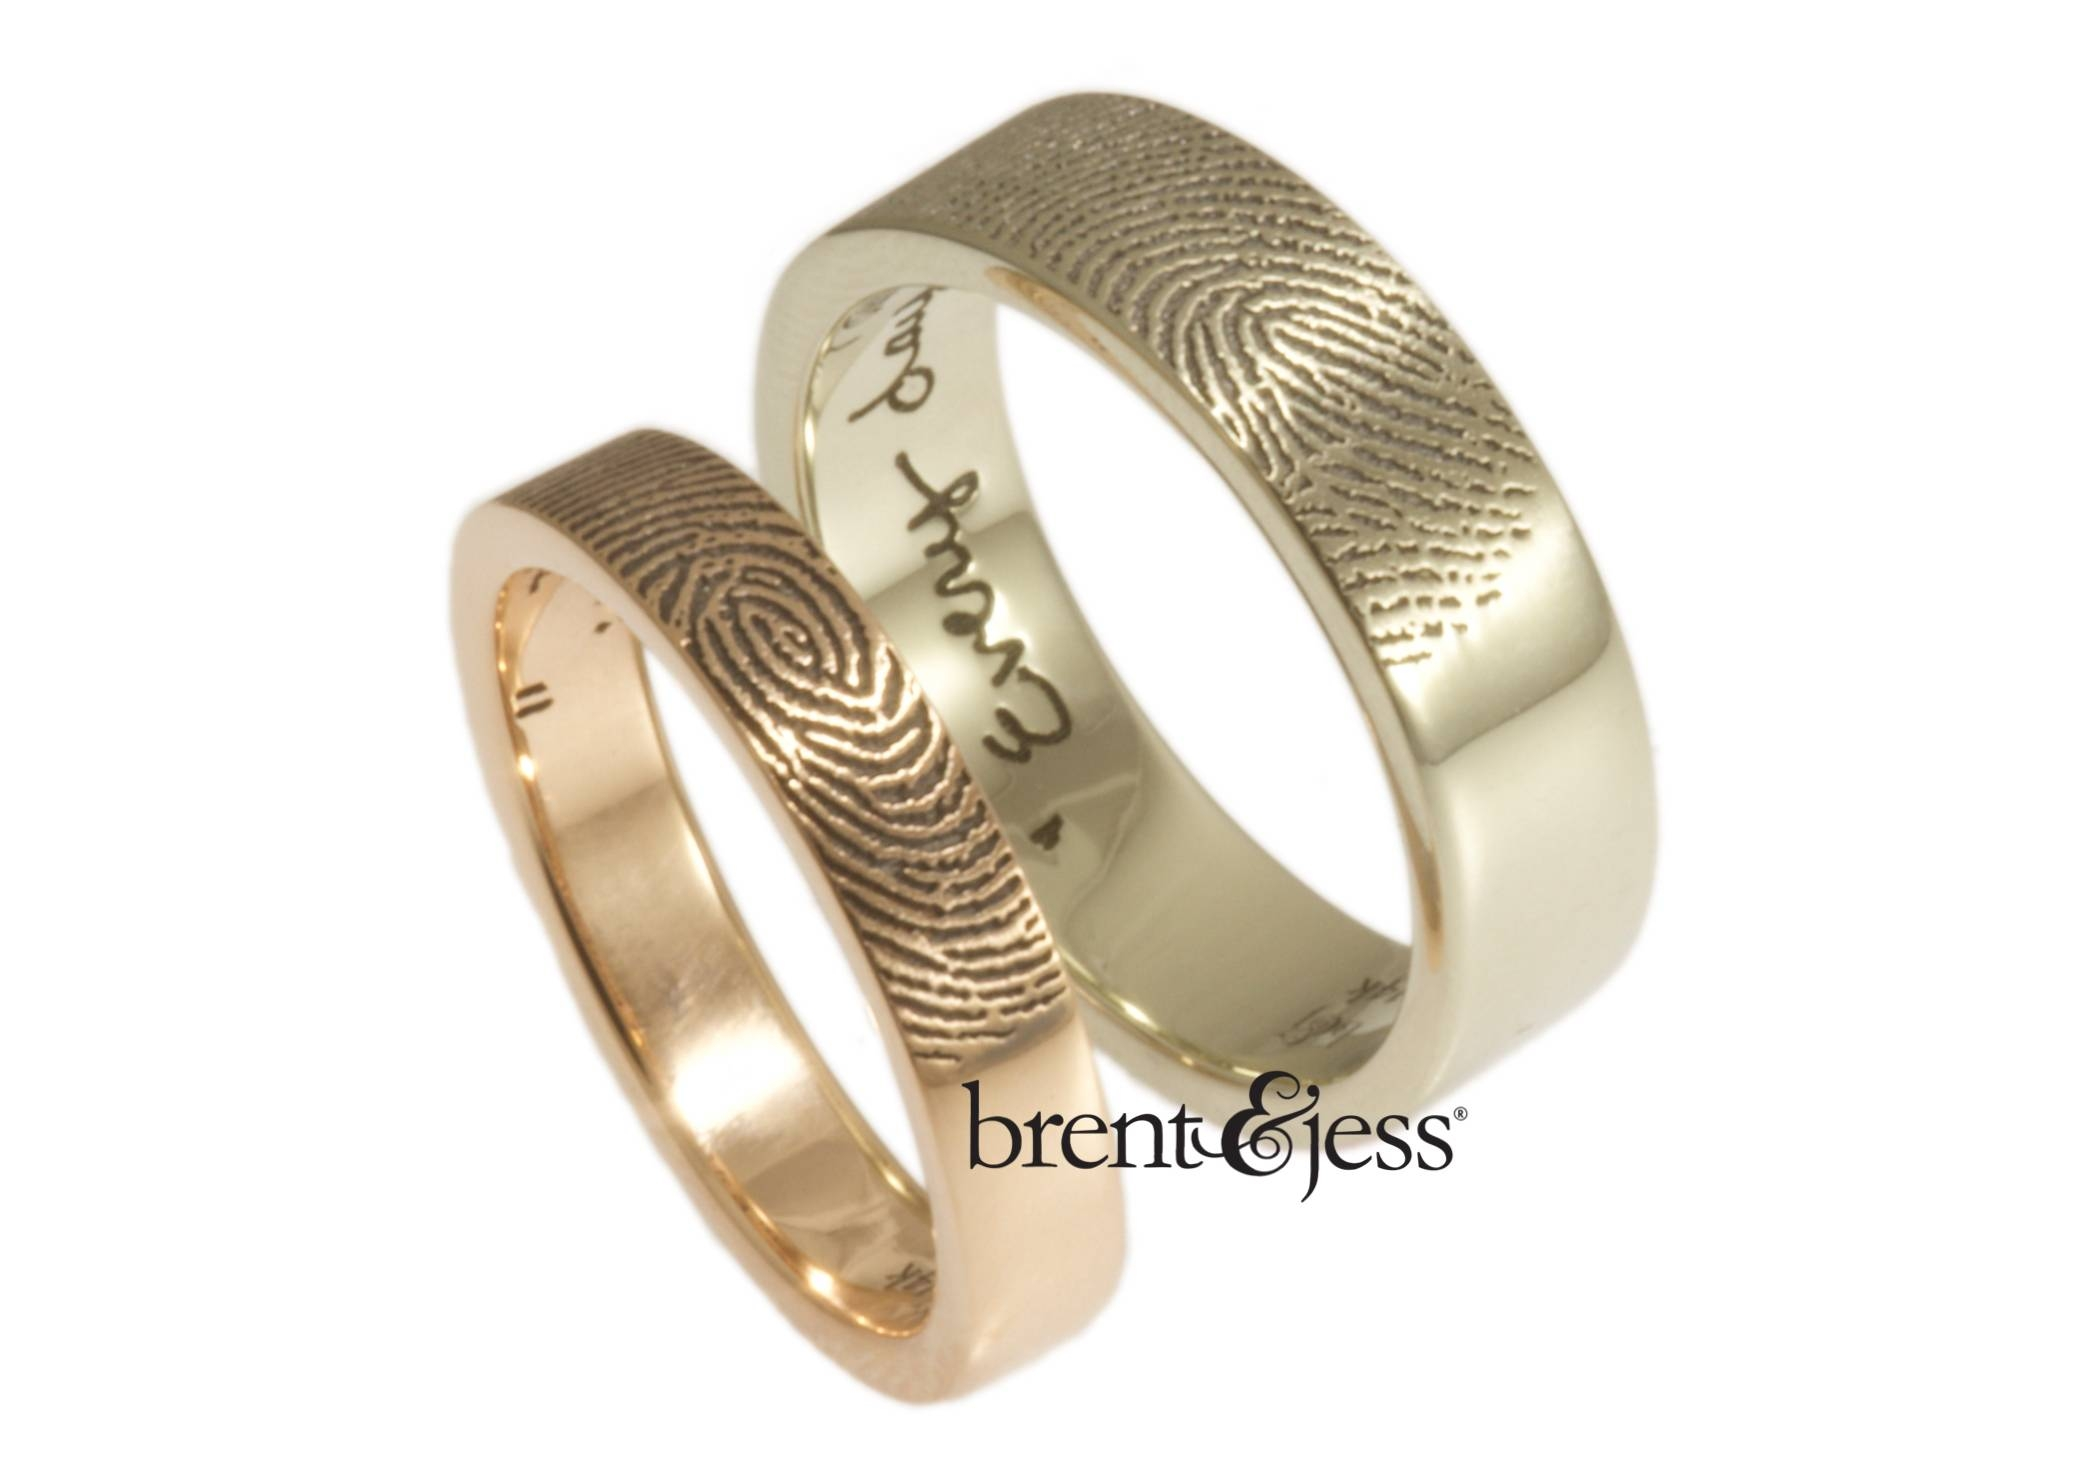 Brent&jess Fingerprint Wedding Rings · Ruffled Pertaining To Finger Print Wedding Rings (View 6 of 15)